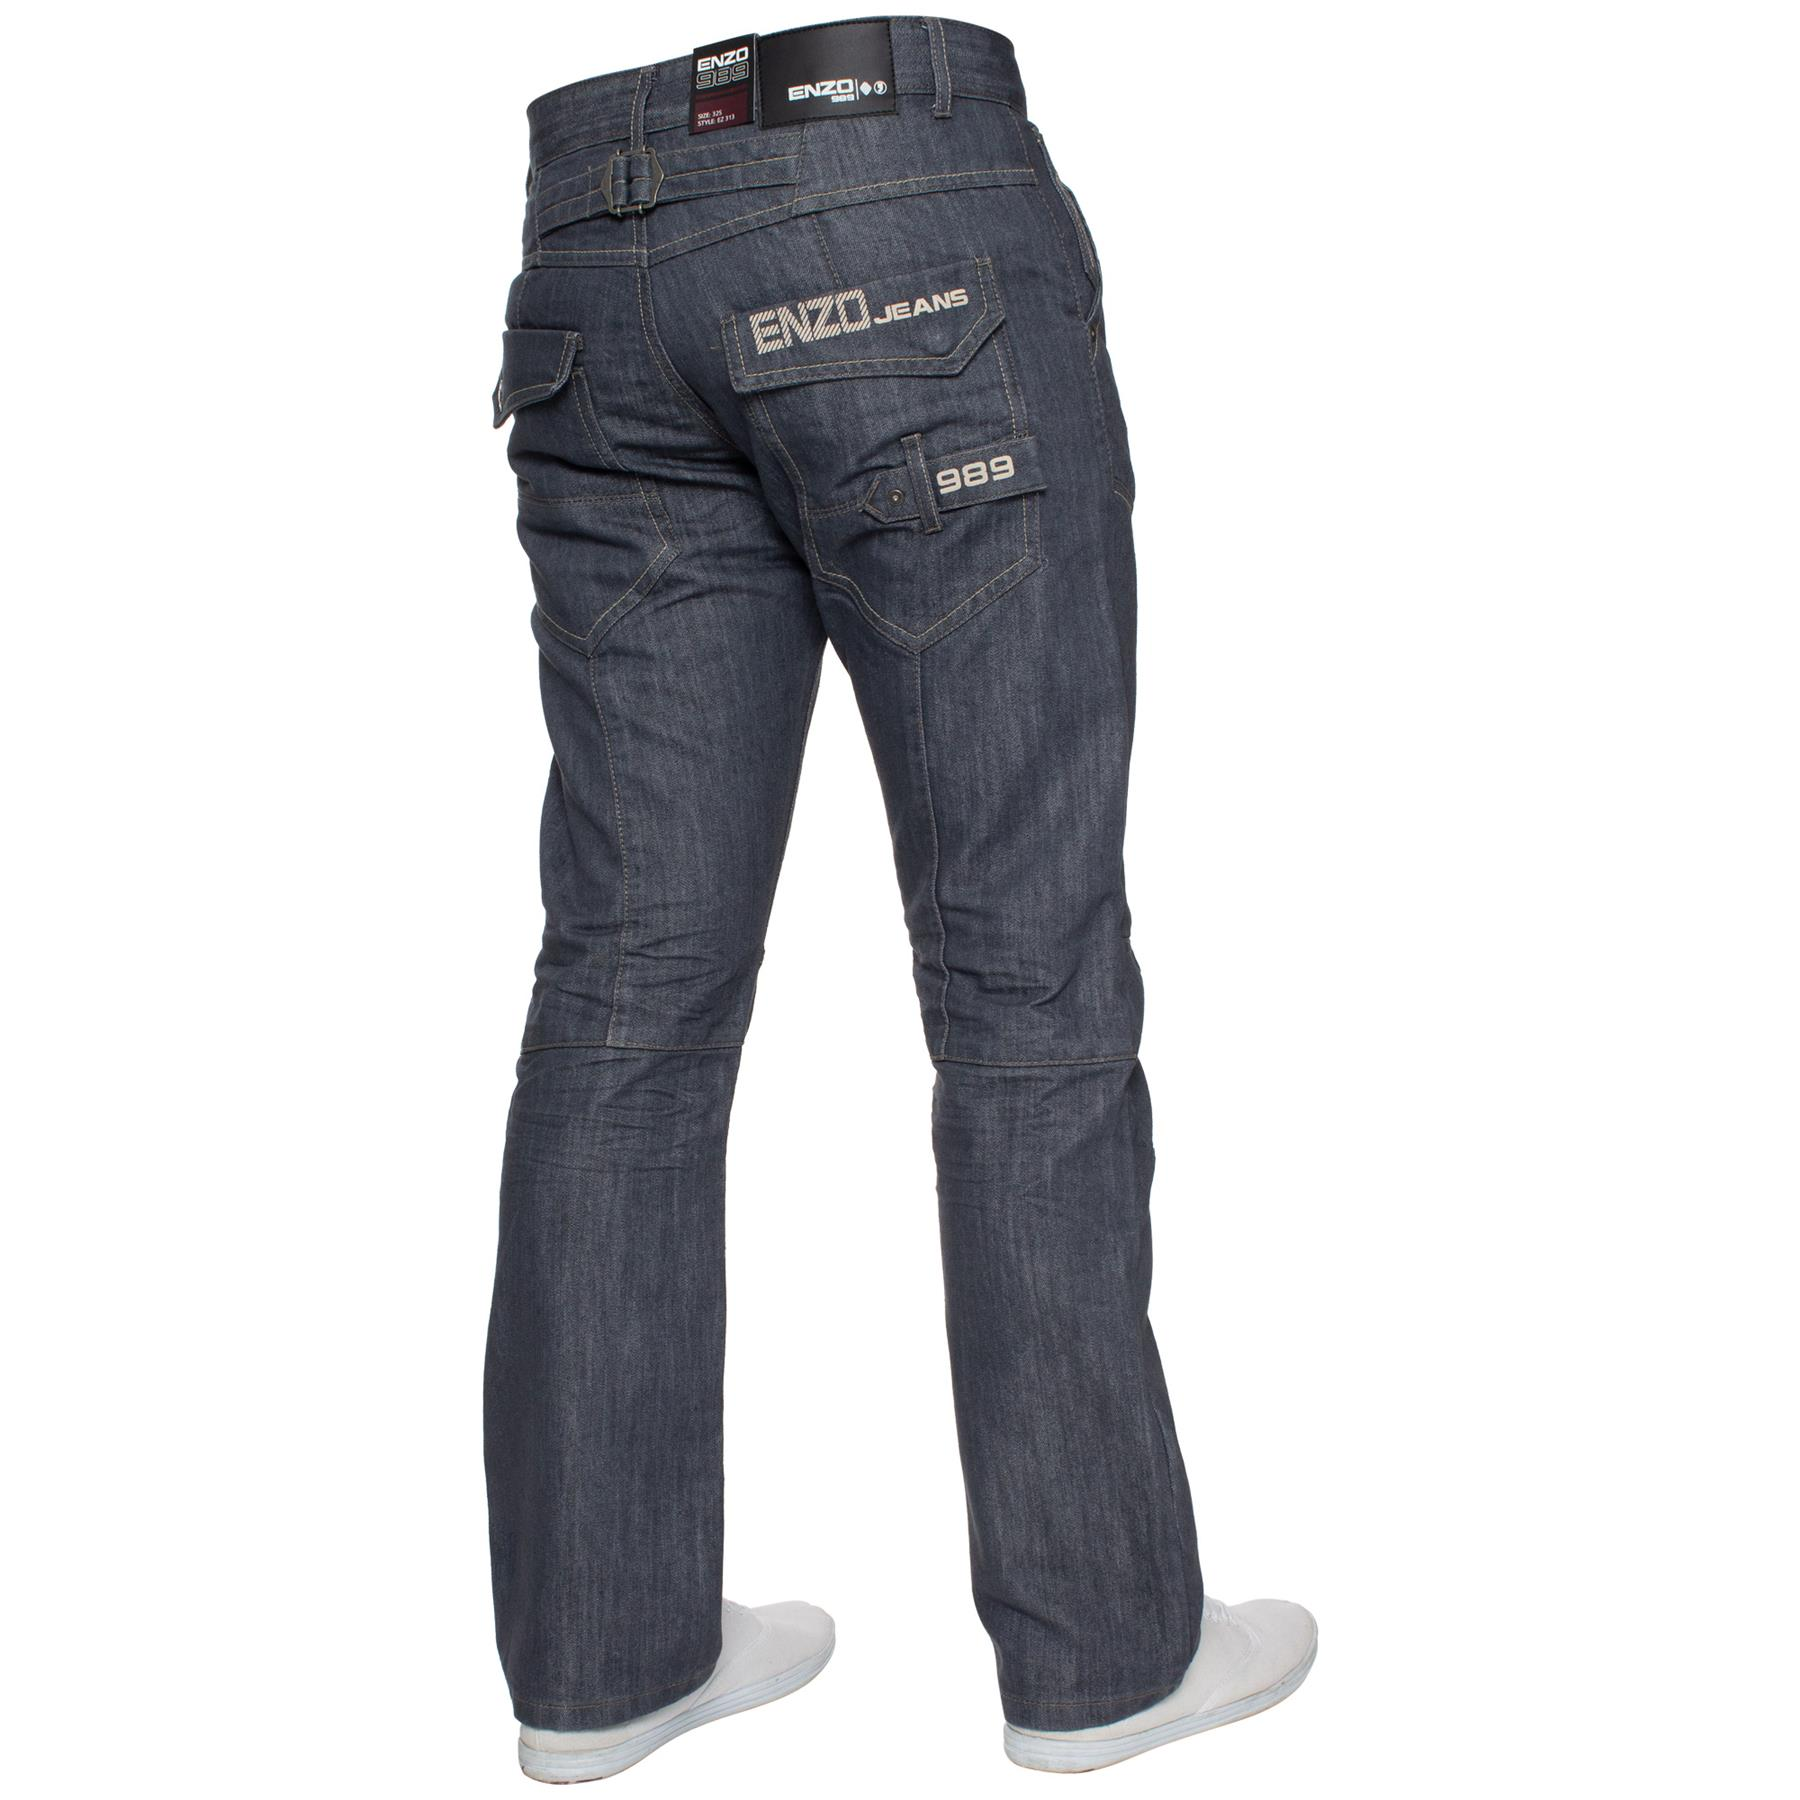 Enzo-Mens-Jeans-Big-Tall-Leg-King-Size-Denim-Pants-Chino-Trousers-Waist-44-034-60-034 miniature 88